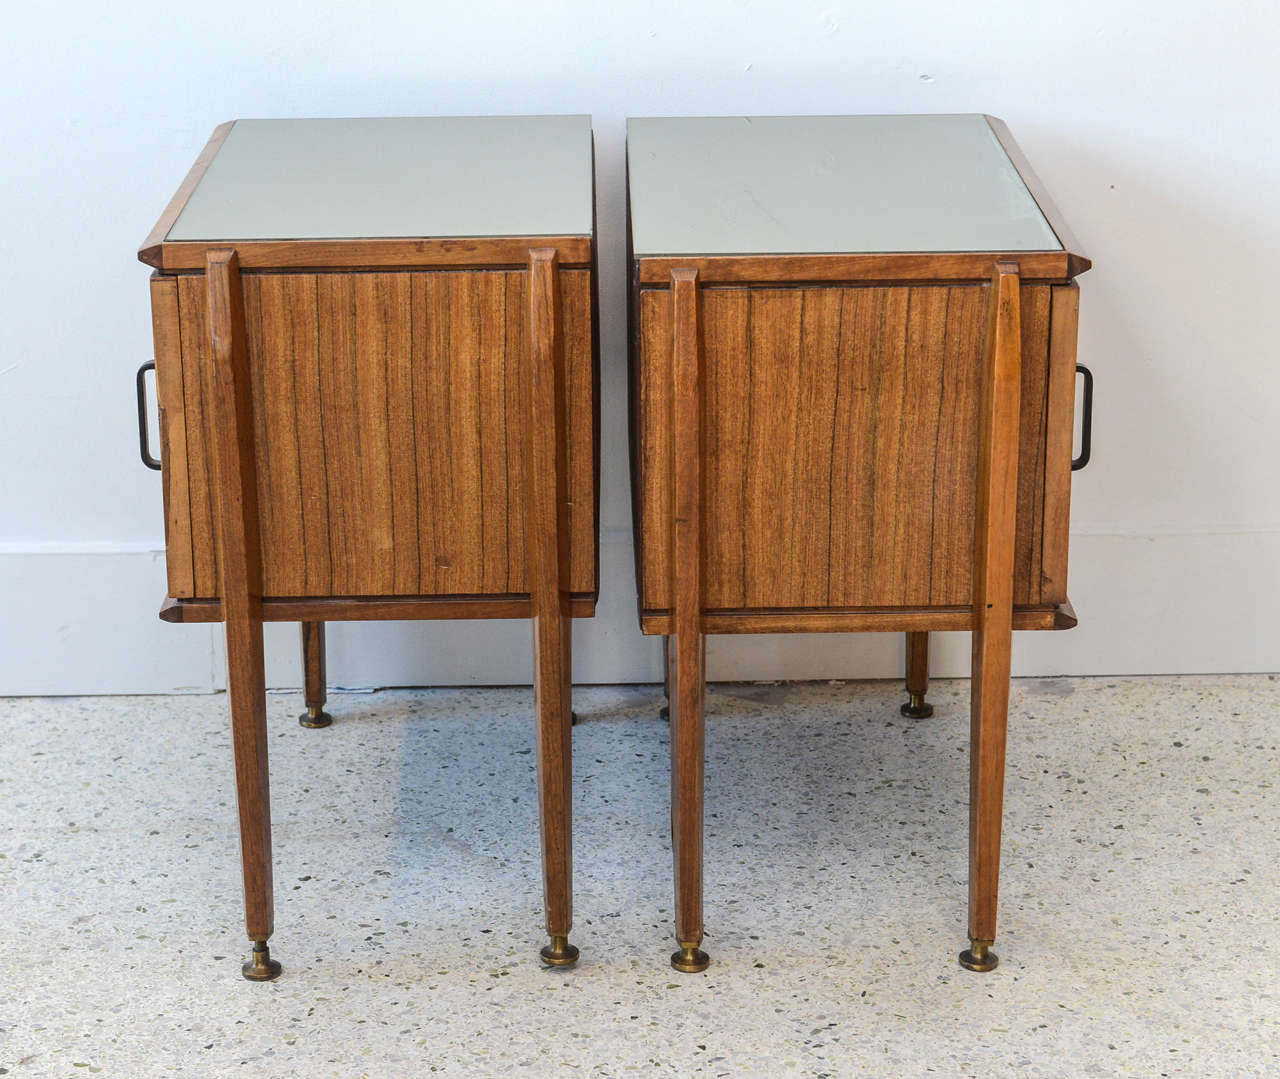 Pair of Italian Modern Inlaid Mixed Wood and Bronze Night Tables, Dassi For Sale 4